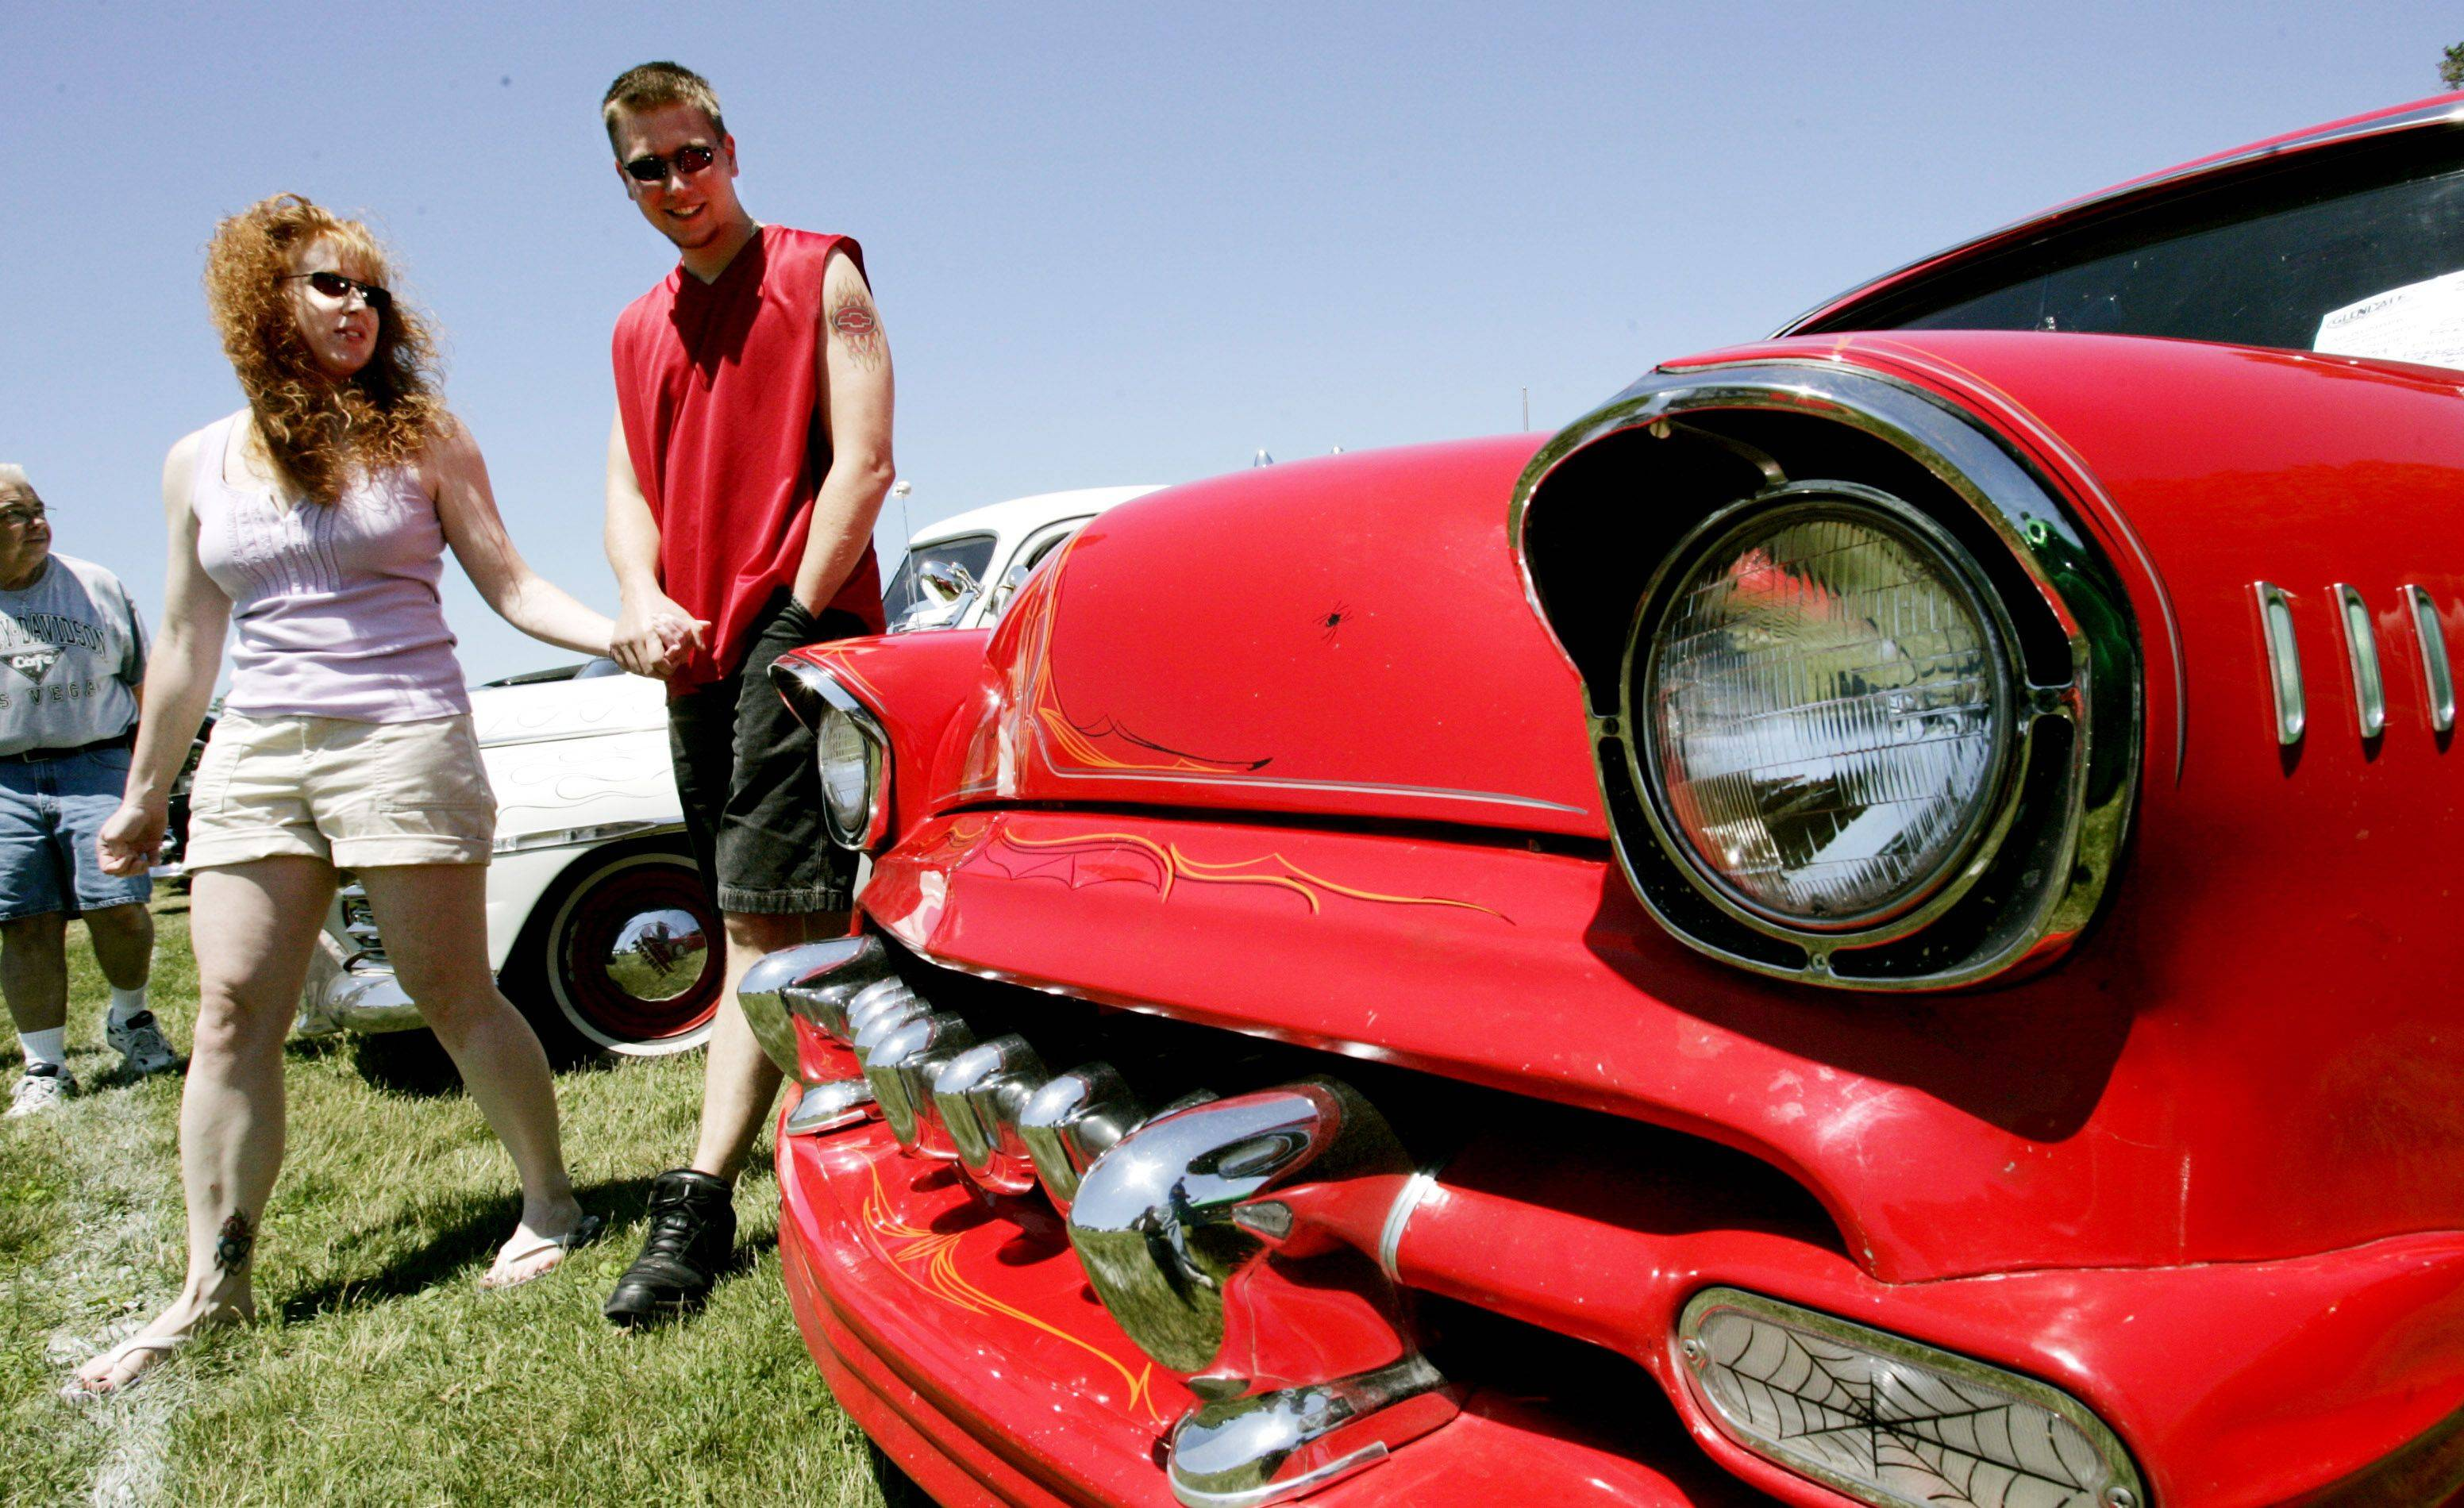 About 200 car owners will display their gleaming chrome, polished paint and crisp whitewalls in the Glendale Heights Show and Shine Car Show, rescheduled to Sunday after being rained out earlier this month.